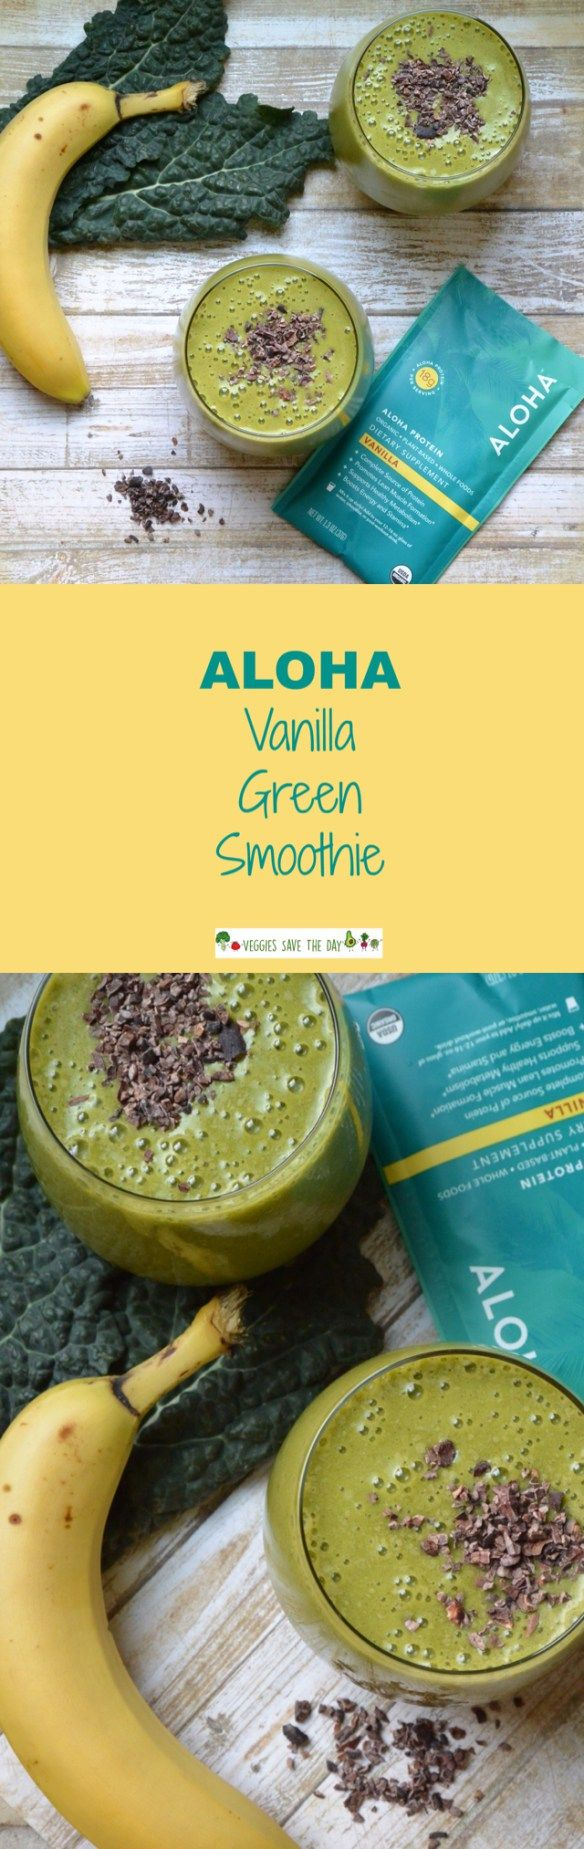 ALOHA protein powder is Non-GMO, soy-free, non-dairy, gluten-free, and vegan. It contains pea, hemp, and pumpkin seed proteins, plus it tastes great! Get this recipe for ALOHA Vanilla Green Smoothie and more like this when you visit www.veggiessavetheday.com, or pin and save for later!